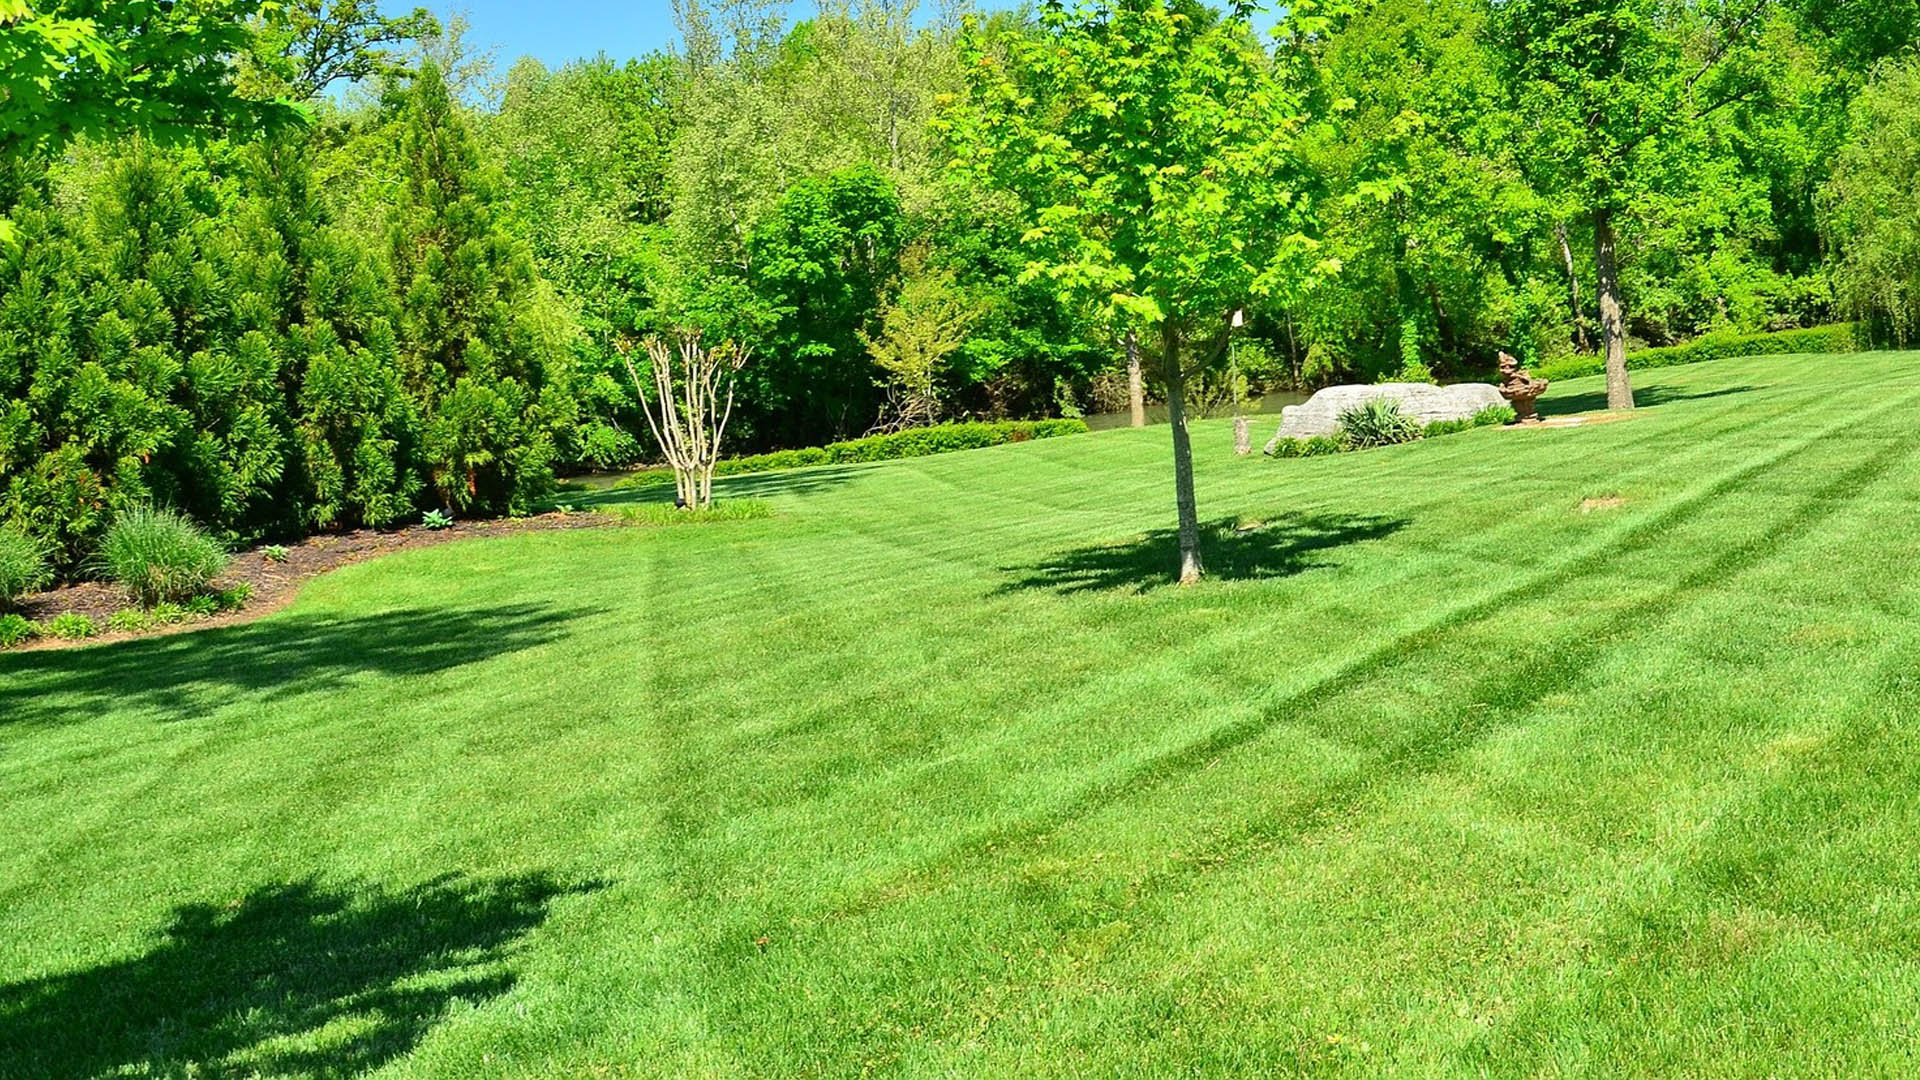 Lawn mowed with striping in Lexington, KY.